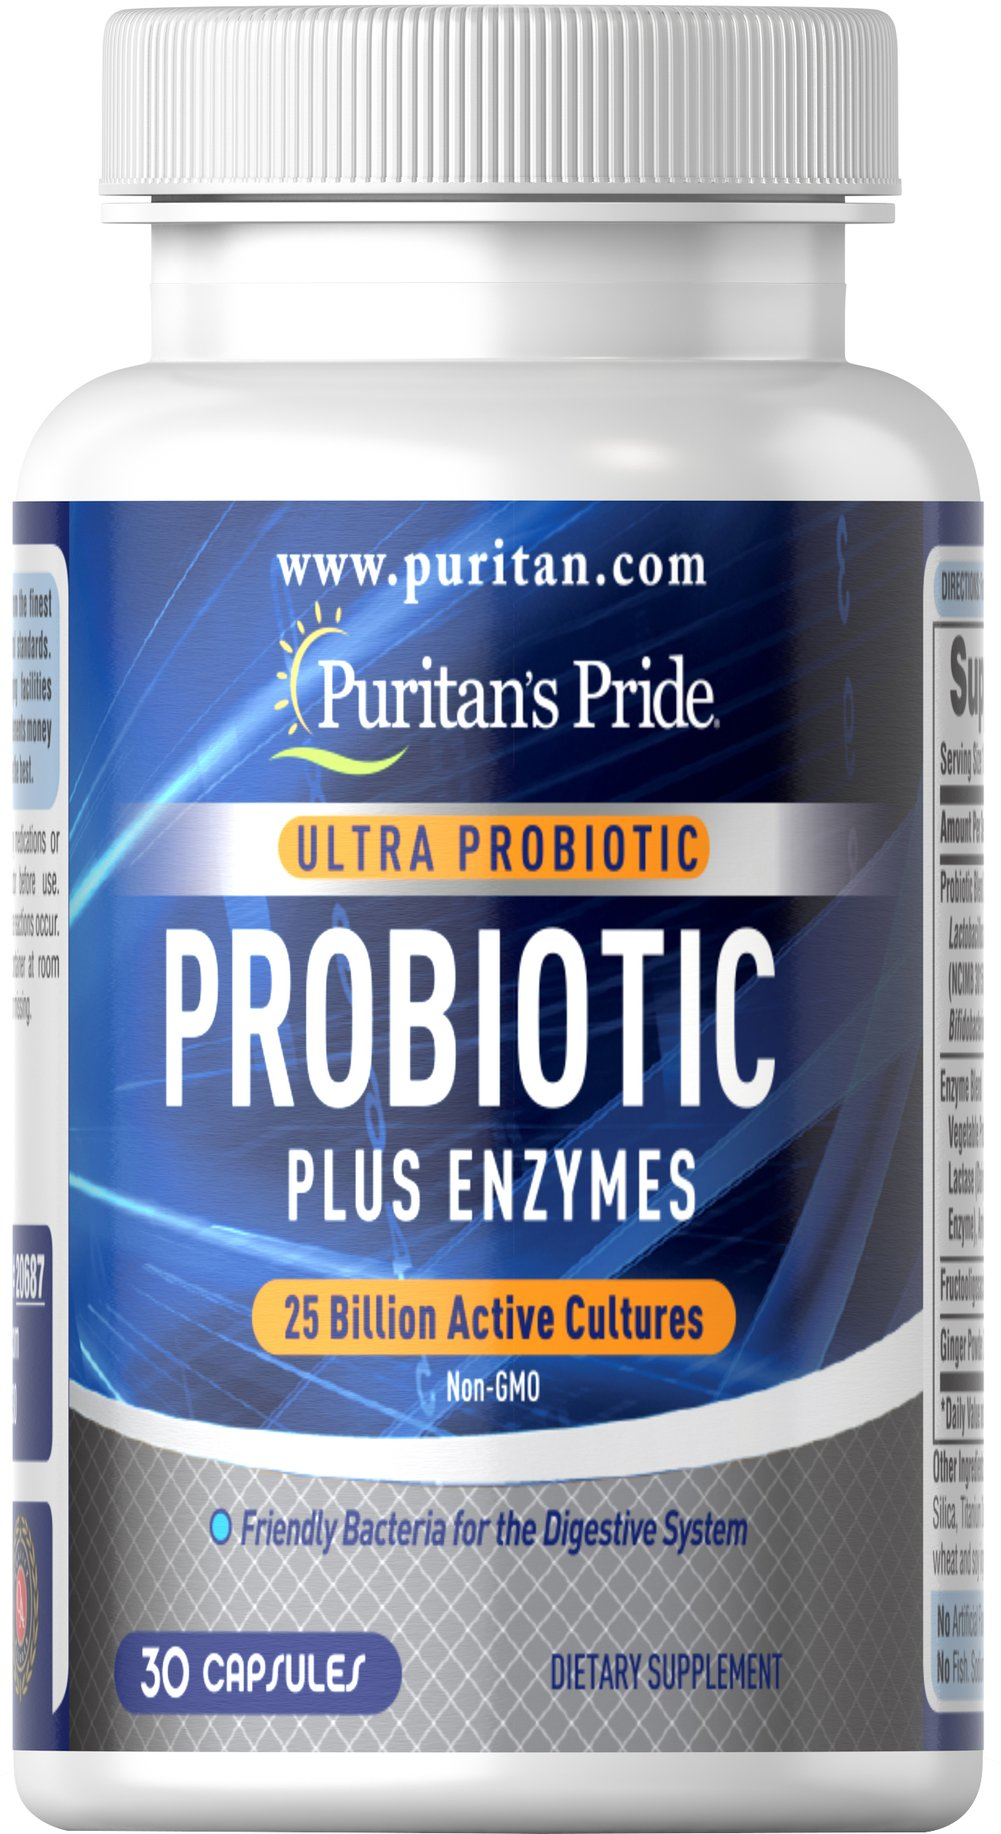 Ultra Probiotic PLUS Enzymes 25 Billion Active Cultures